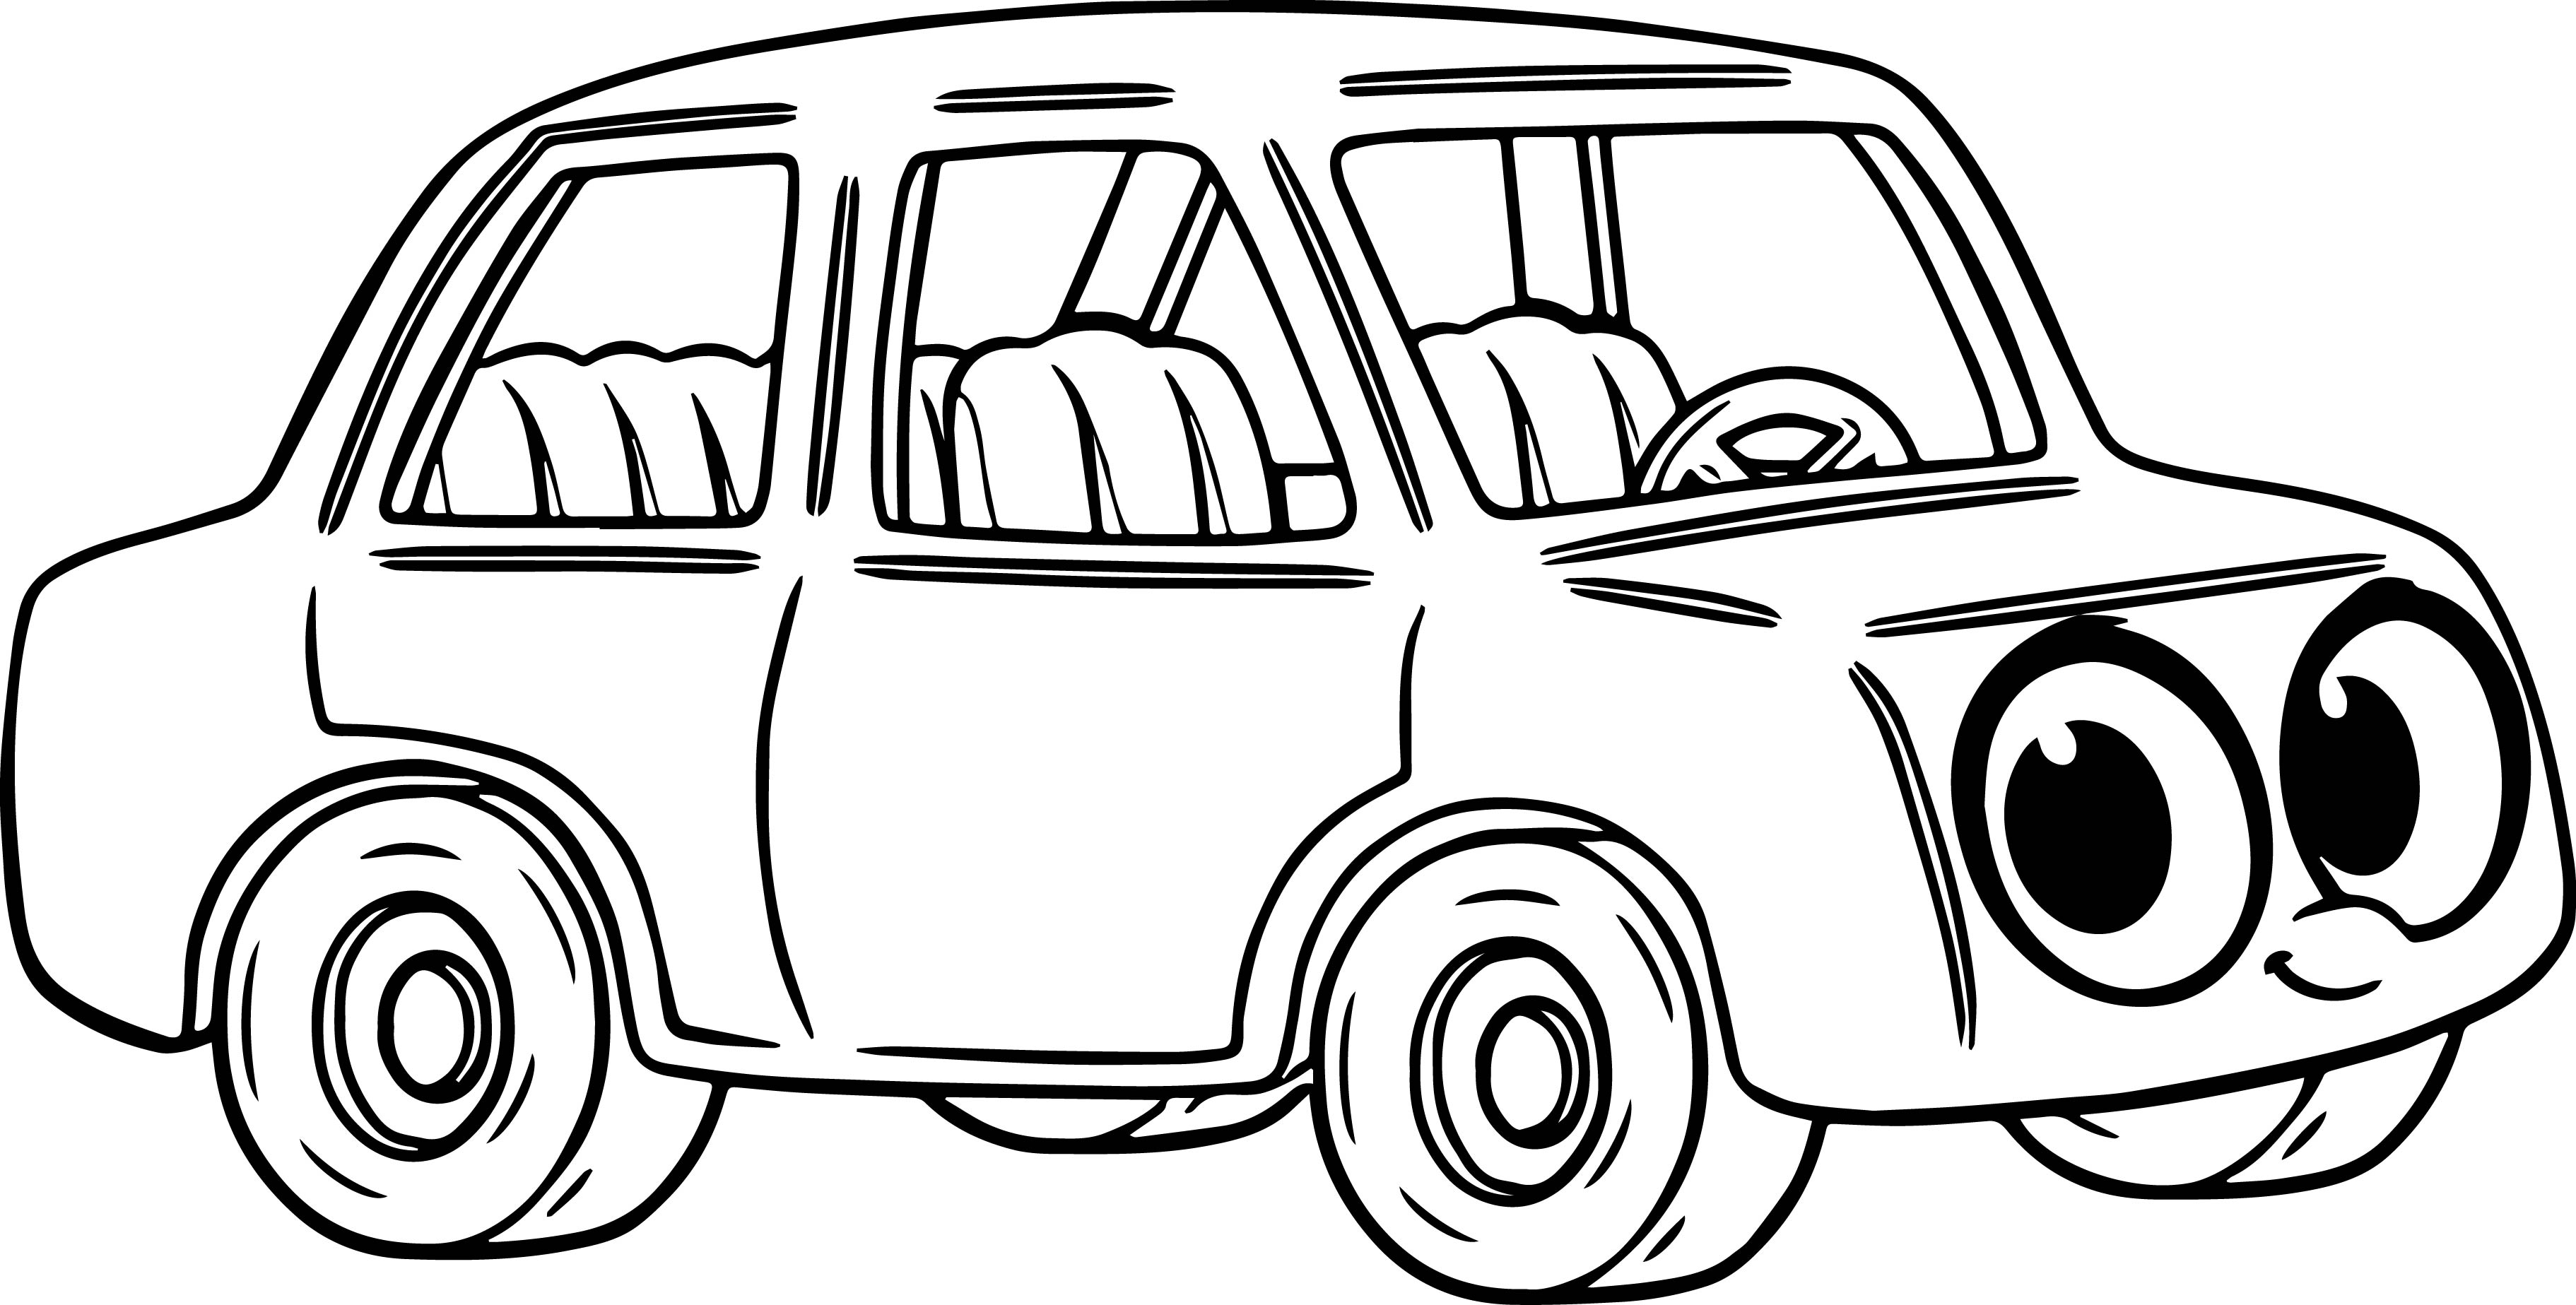 Morphle Cartoon My Cute Car Coloring Page